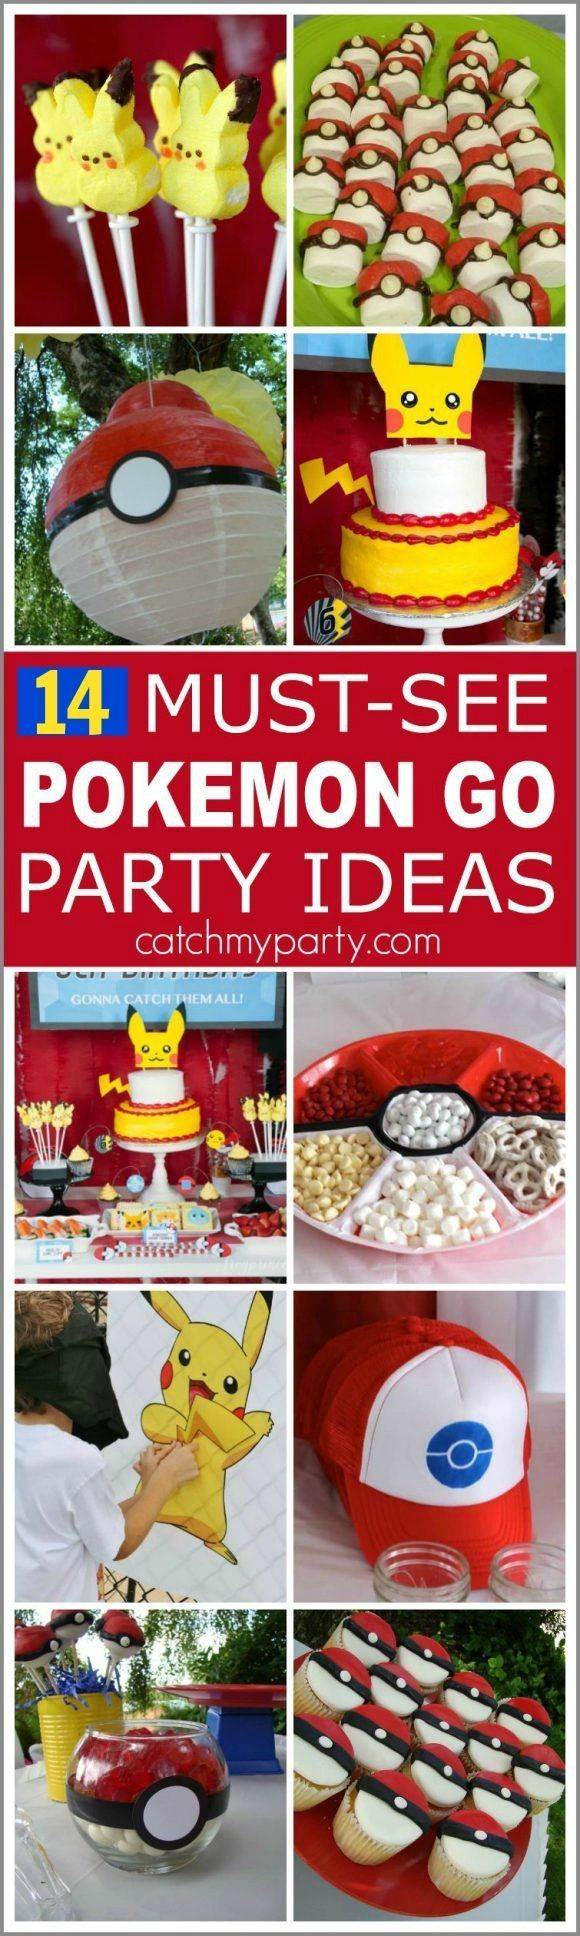 14 Must-See Pokemon Go Party Ideas including desserts, decorations, party games, and party favors. These are all great ideas for your upcoming Pokemon Go birthday parties! | Catchmyparty.com